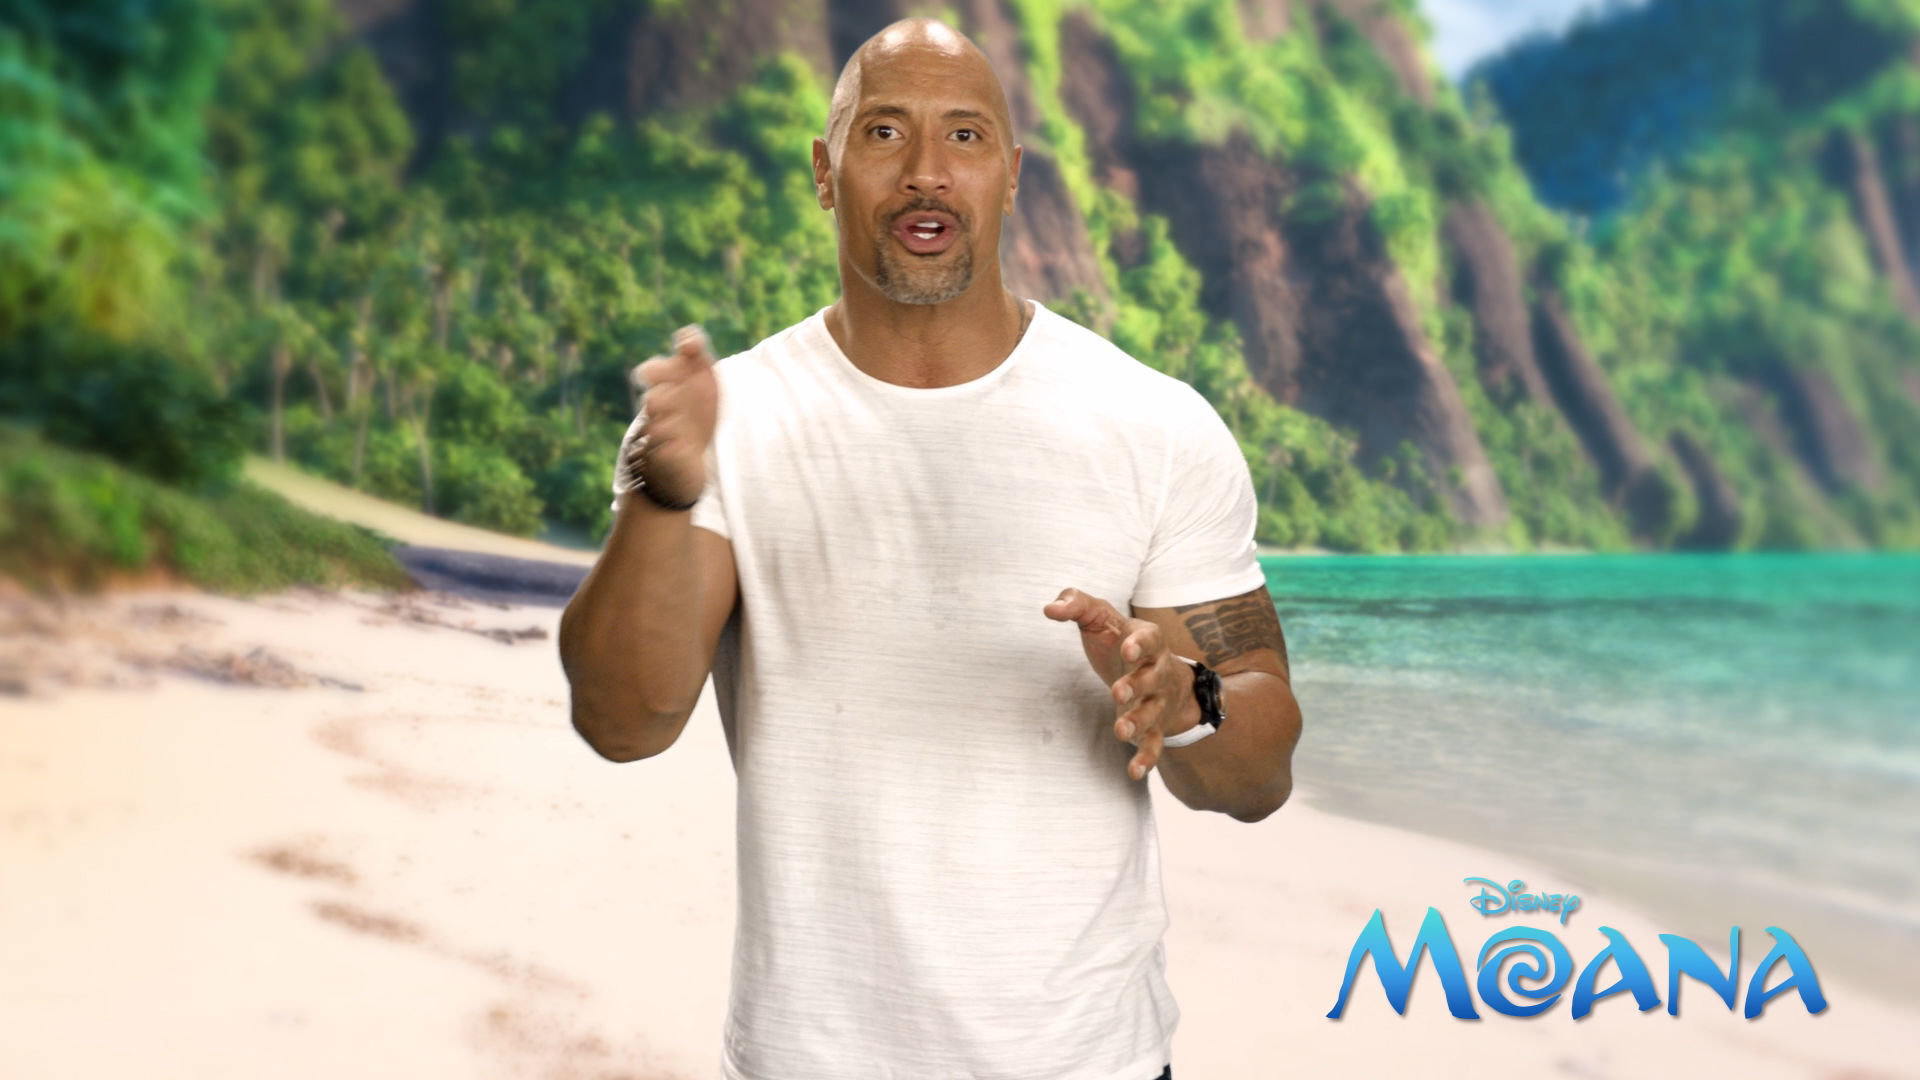 Disney Crossy Road | A Special Message From Dwayne Johnson